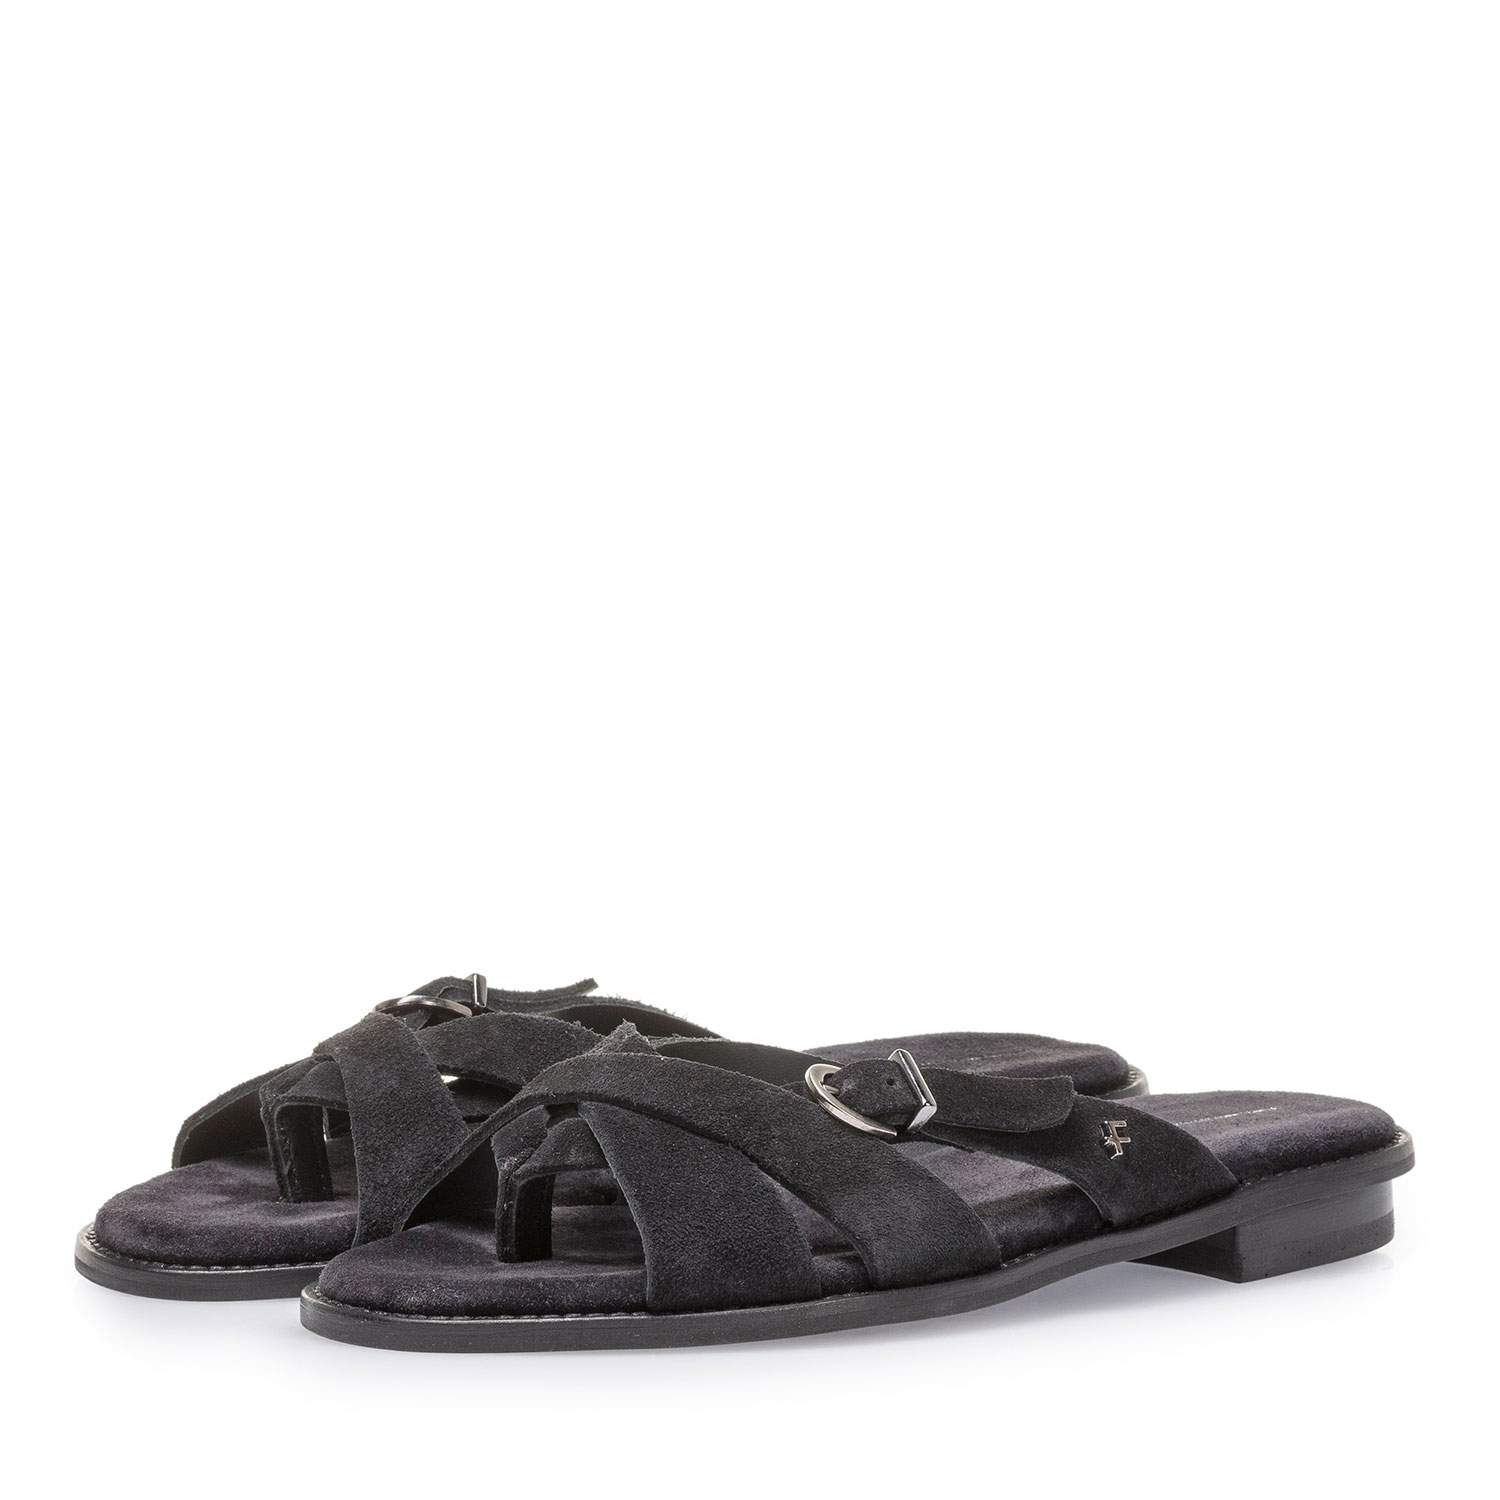 85926/00 - Black suede leather slipper